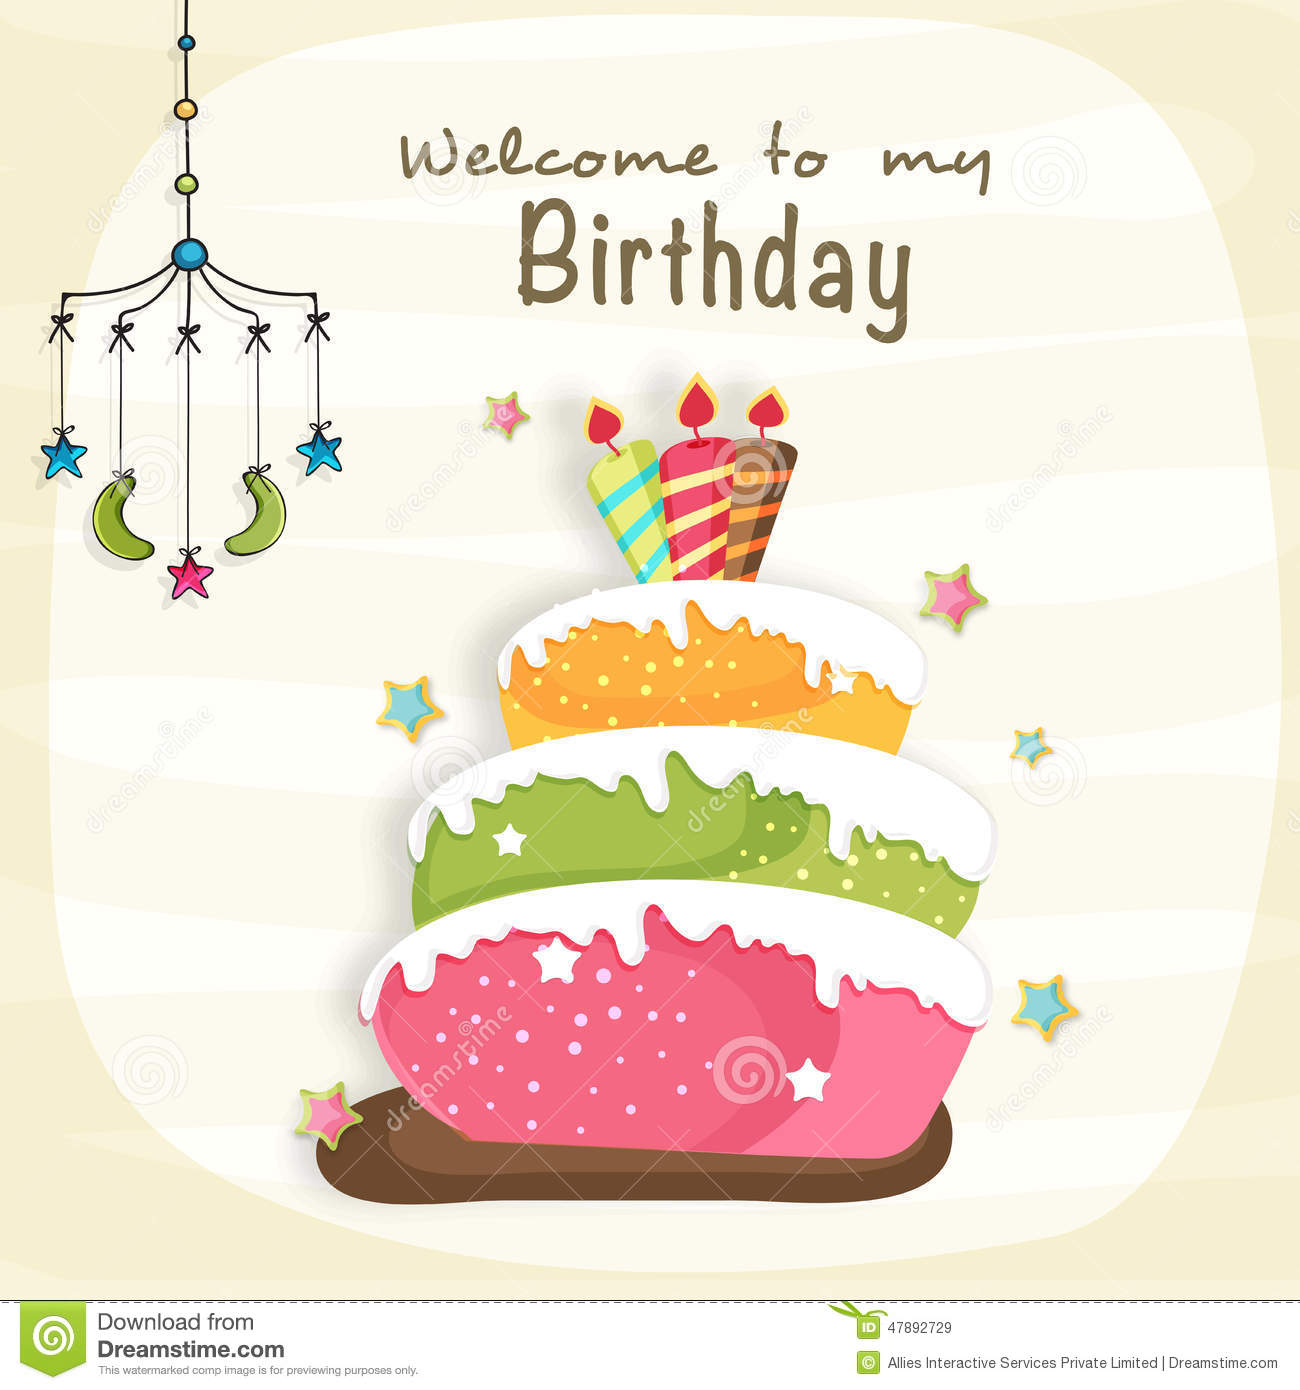 Birthday Celebration Invitation Card Design. Stock Illustration ...